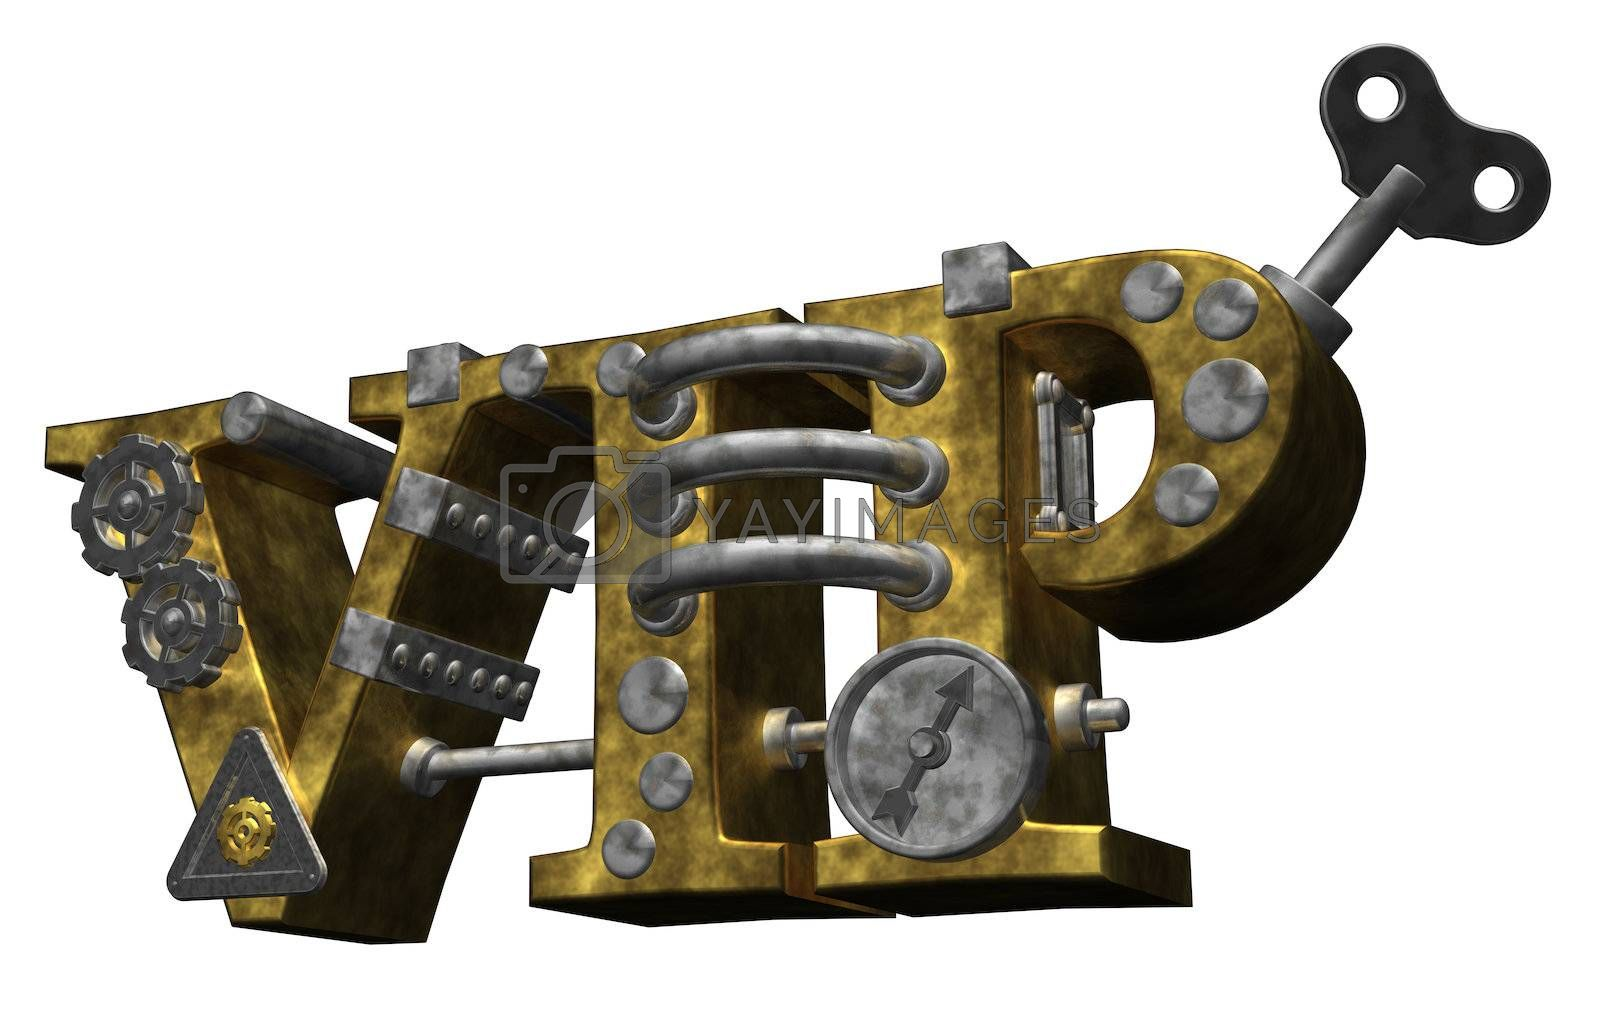 the letters vip in steampunk style - 3d illustration